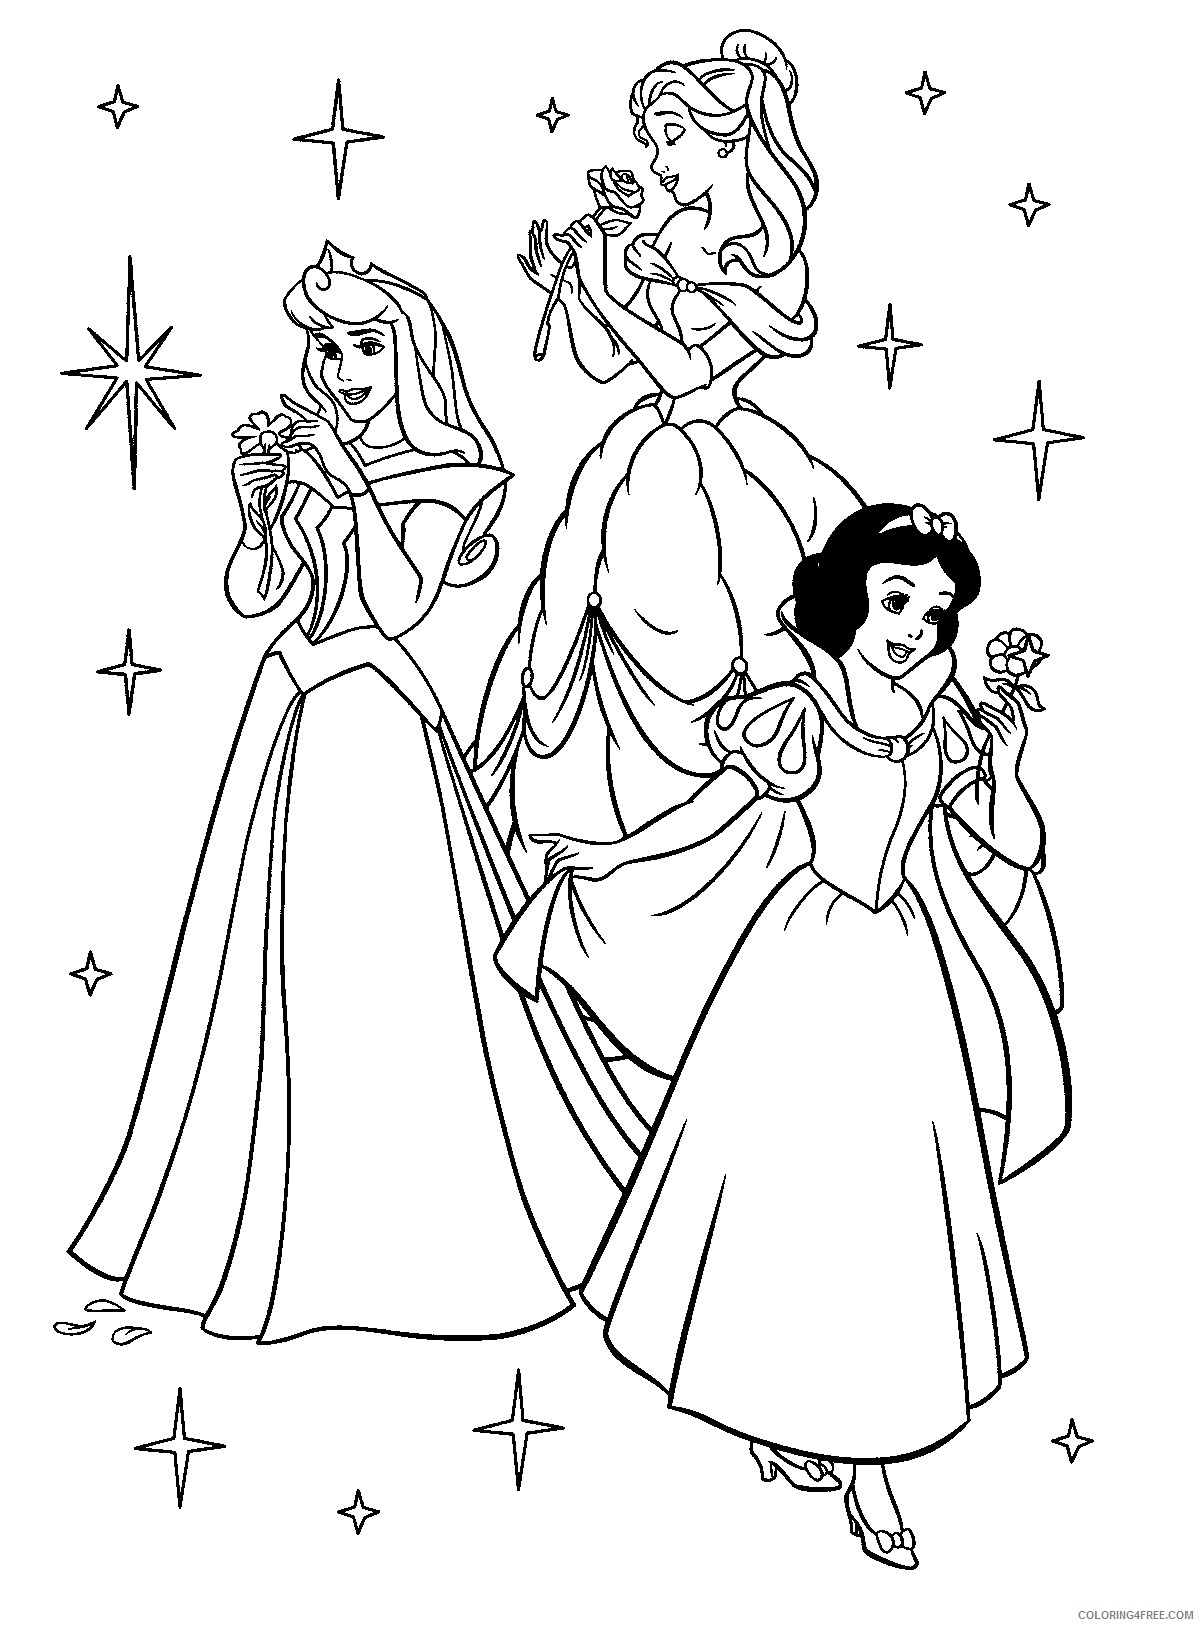 disney princesses coloring pages belle snow white Coloring4free